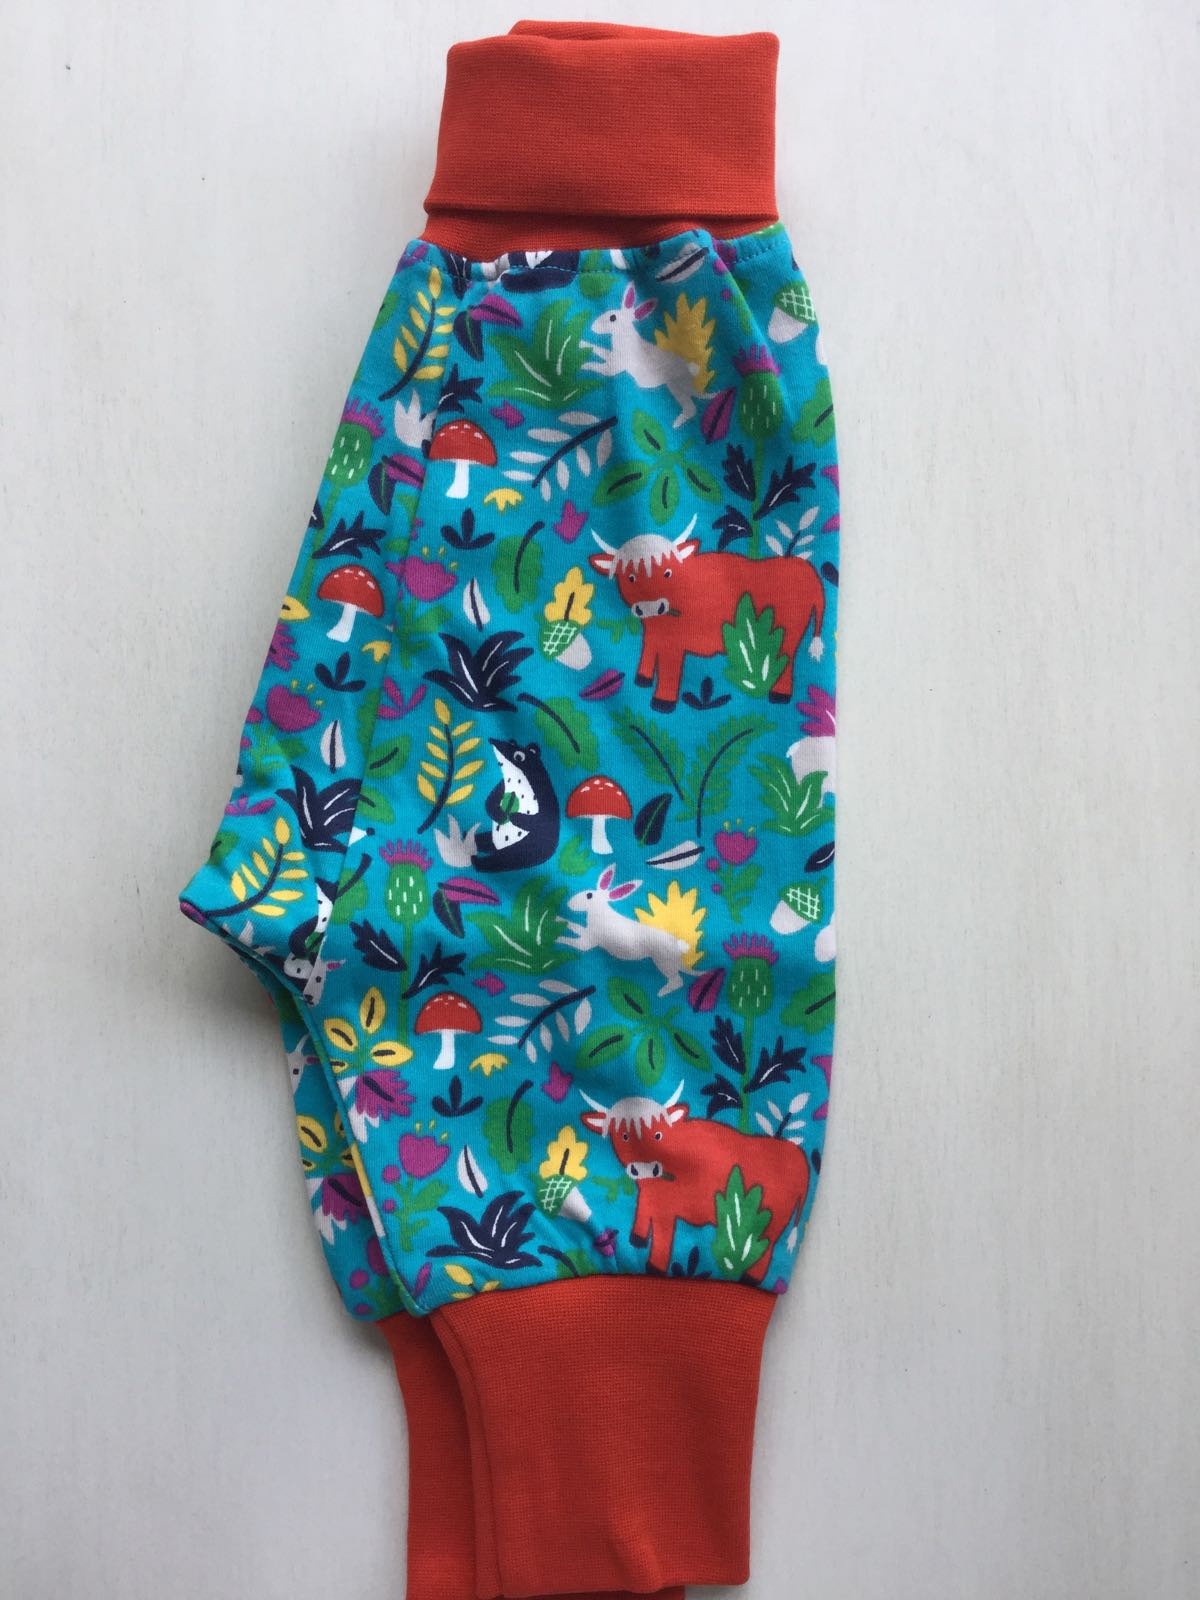 NEW - Frugi - Parsnip pants - Woodland Critters